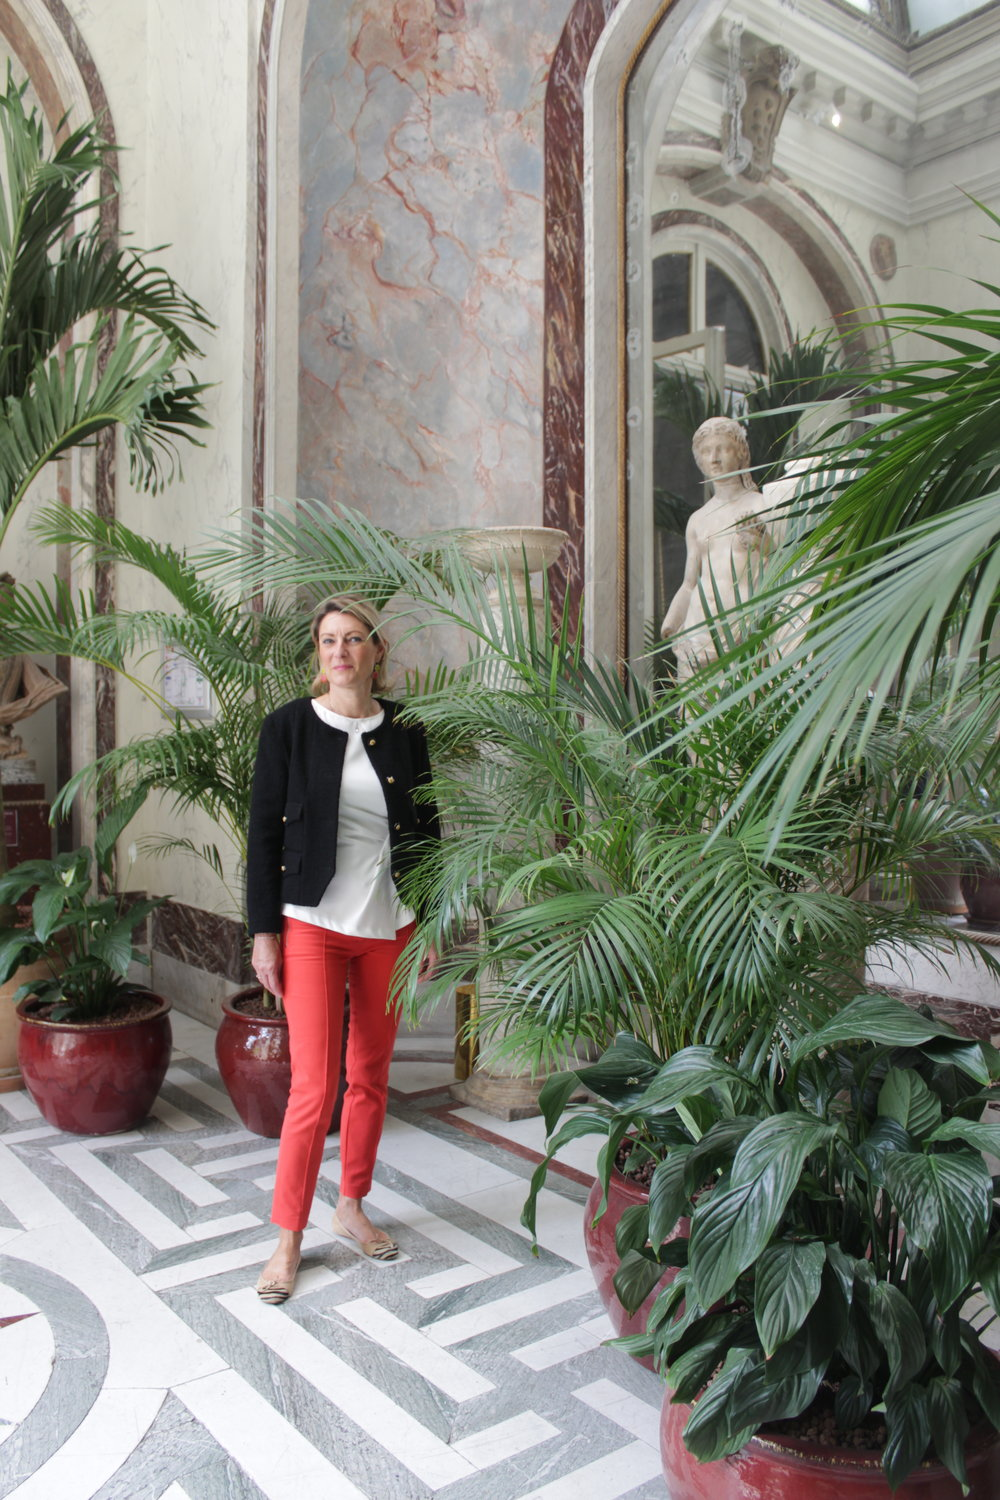 CHRISTINE, MUSEE JAQUEMART-ANDRE